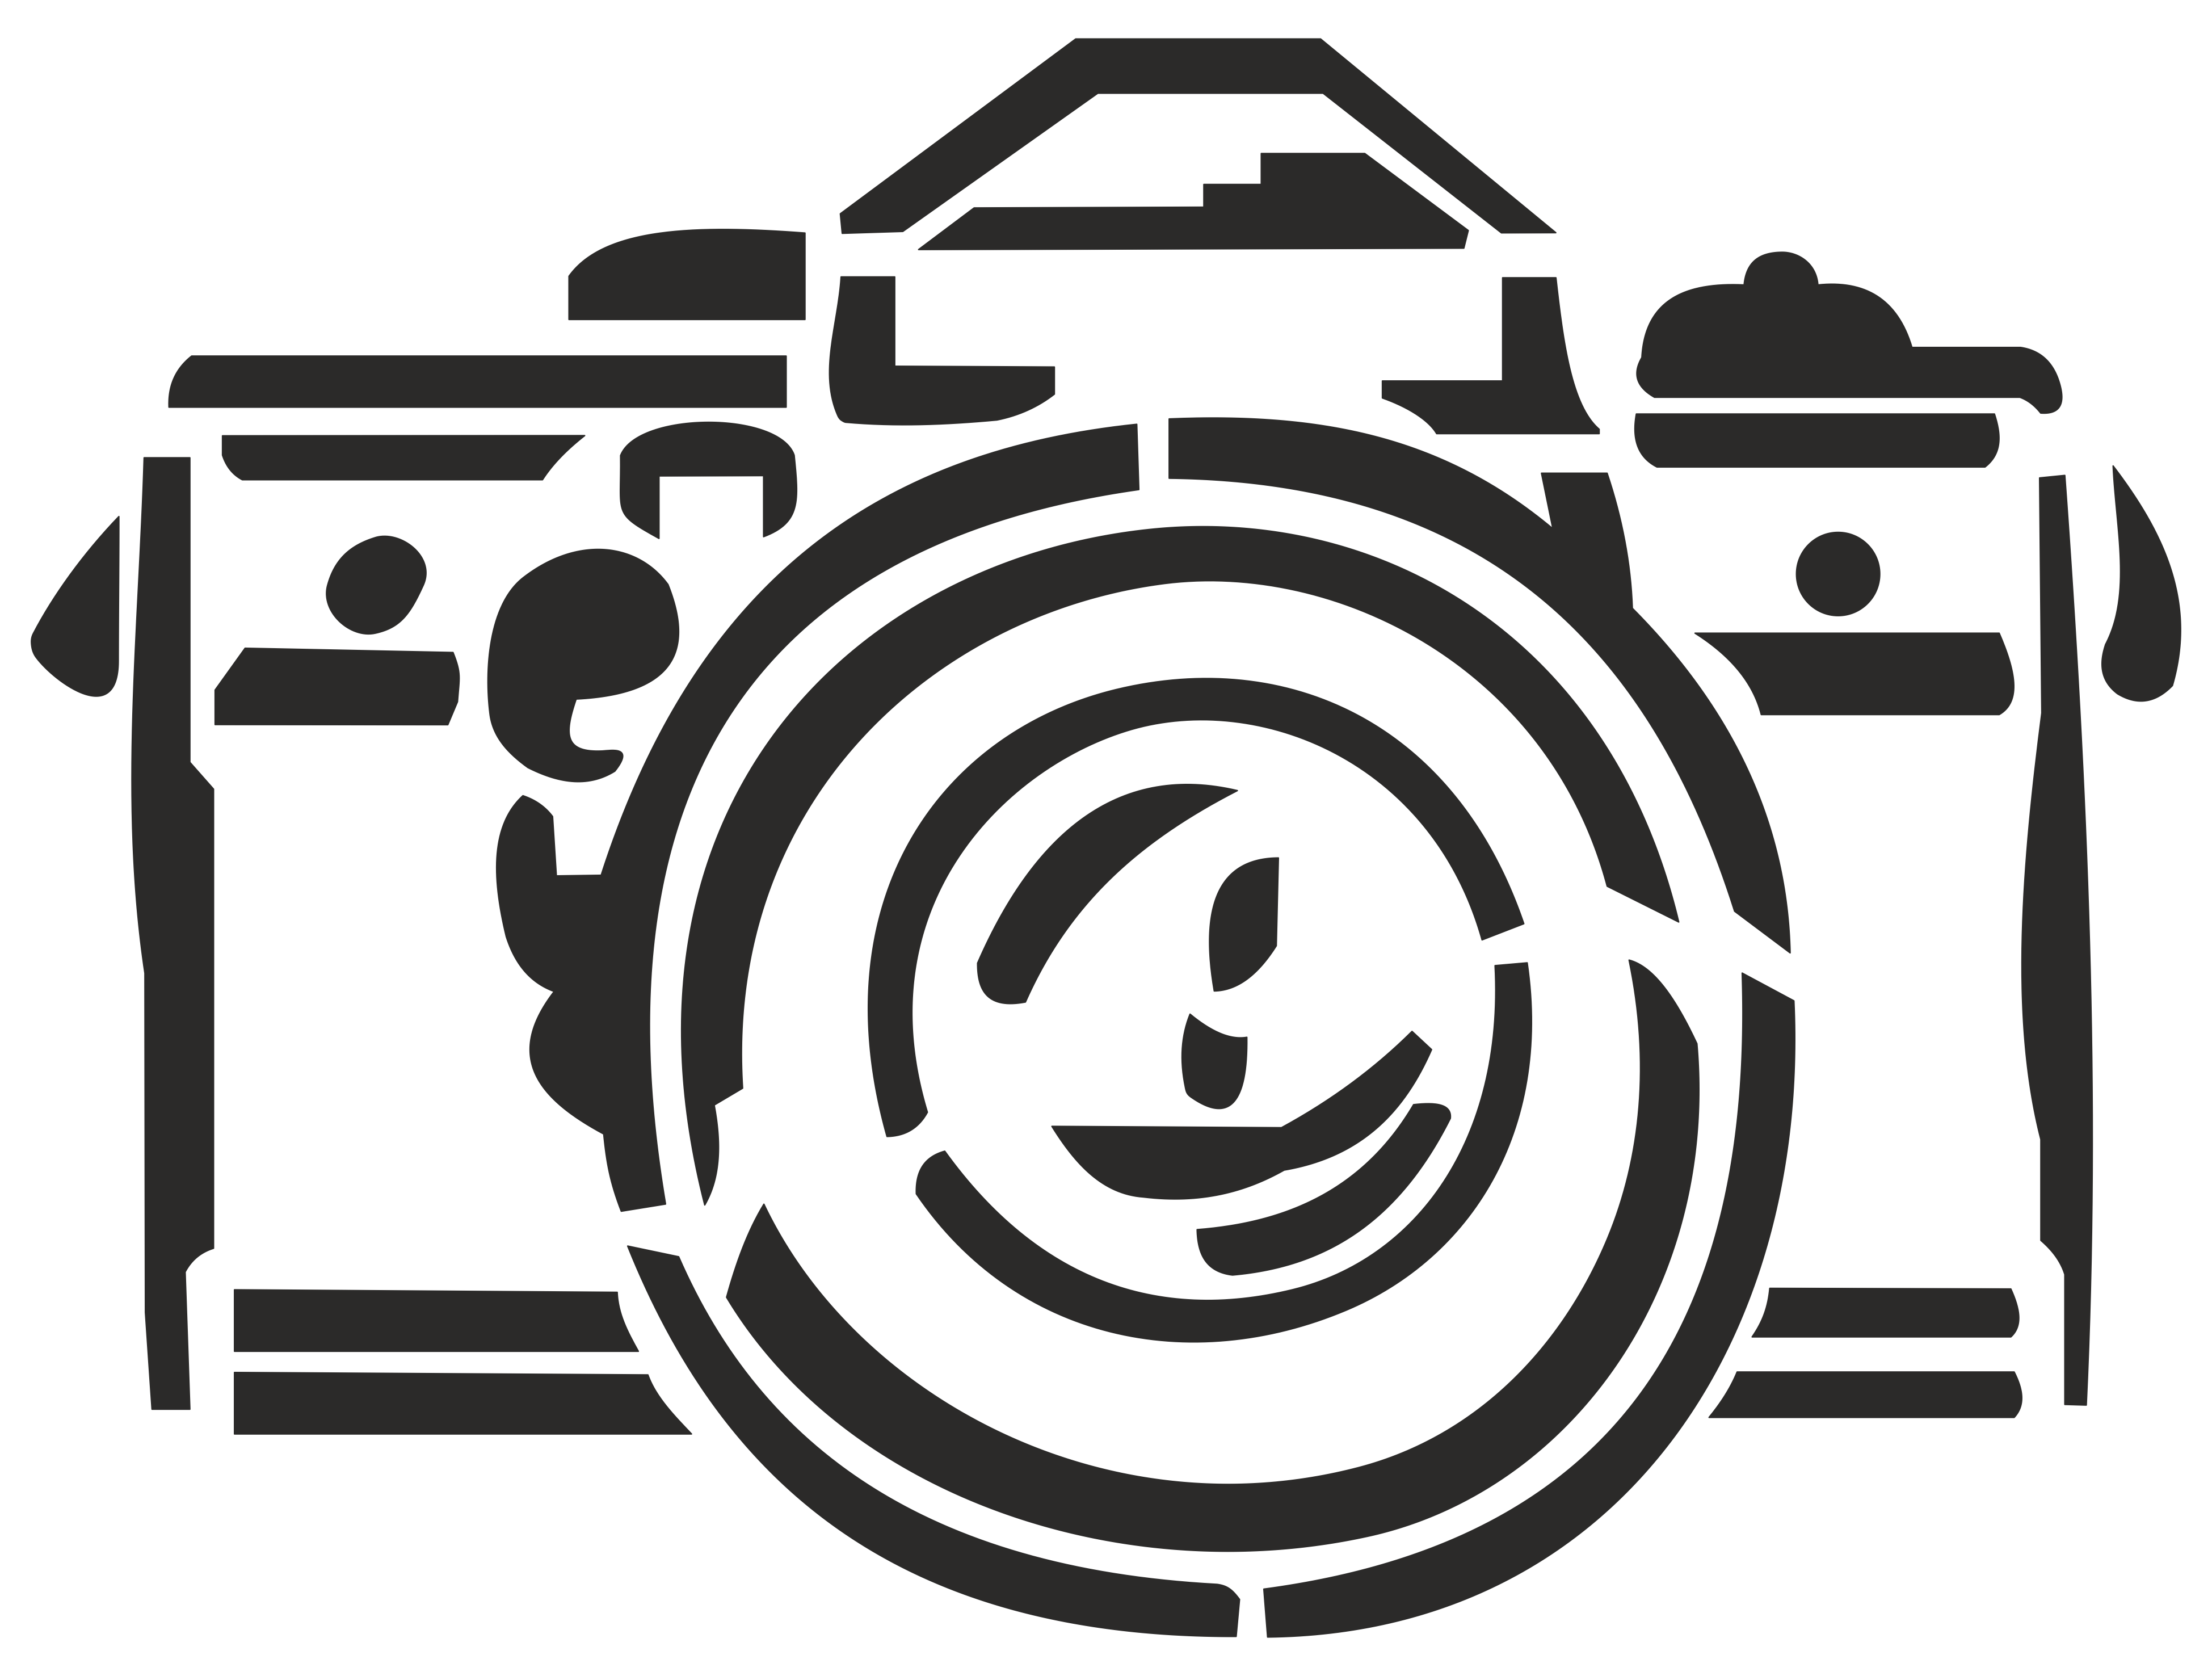 camera logo cliparts #7147